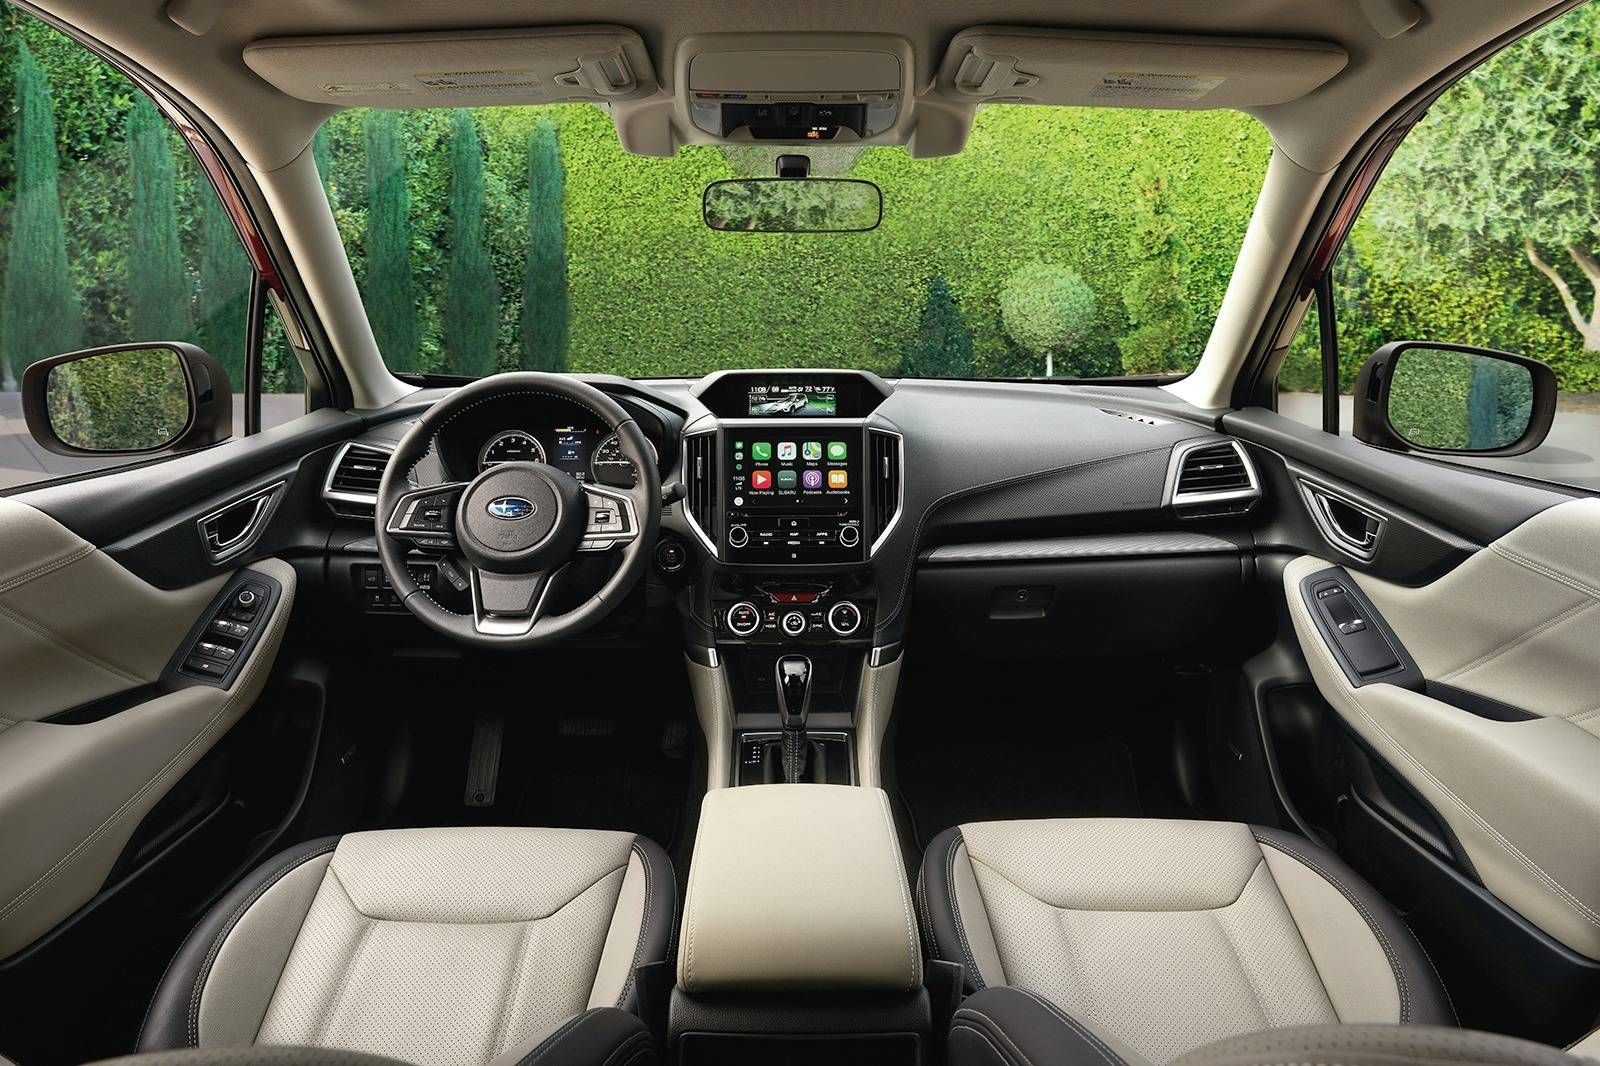 2019 Subaru Forester Pricing, Features, Ratings and